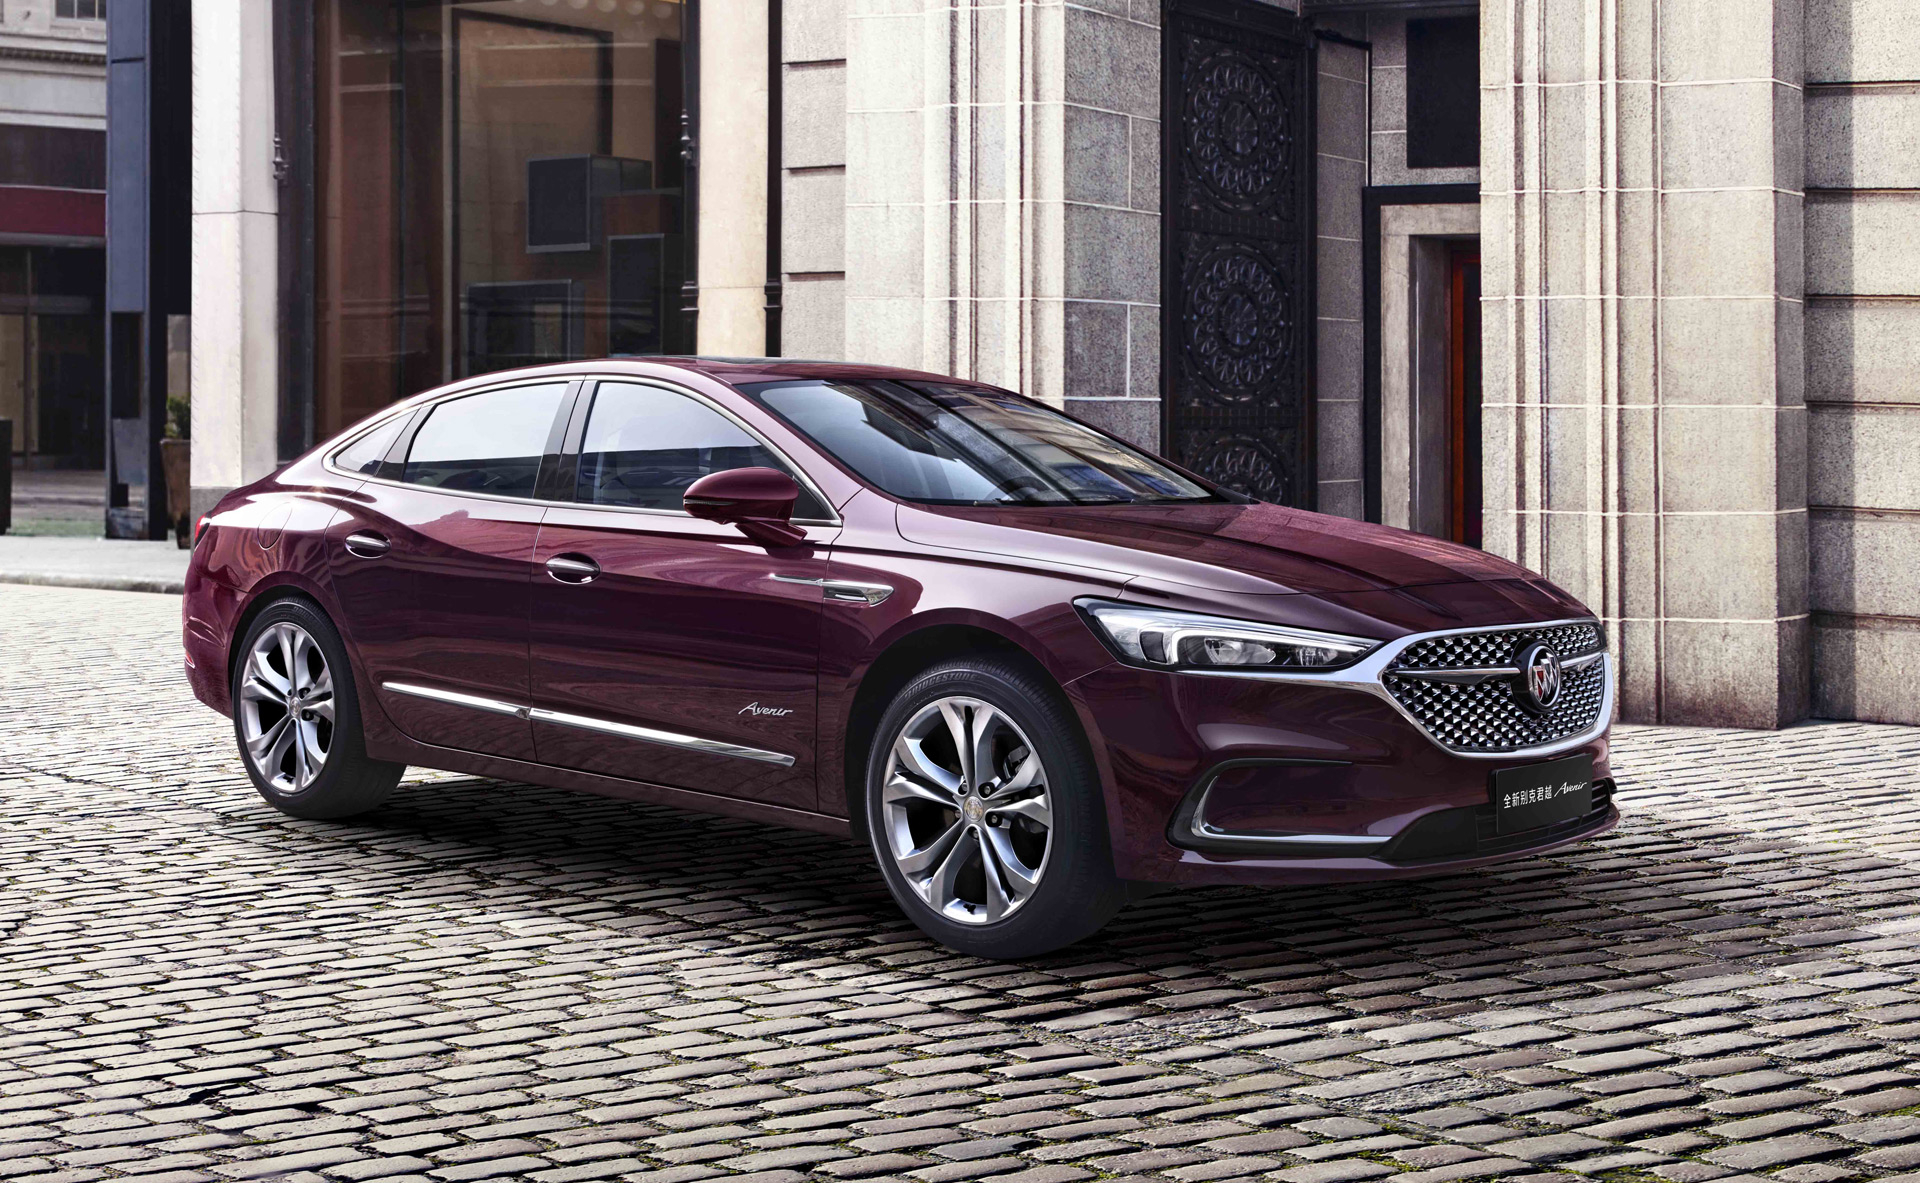 2020 Buick Lacrosse Made Handsome Just As It's Dropped In Us New 2022 Buick Lacrosse Images, Inside, Length